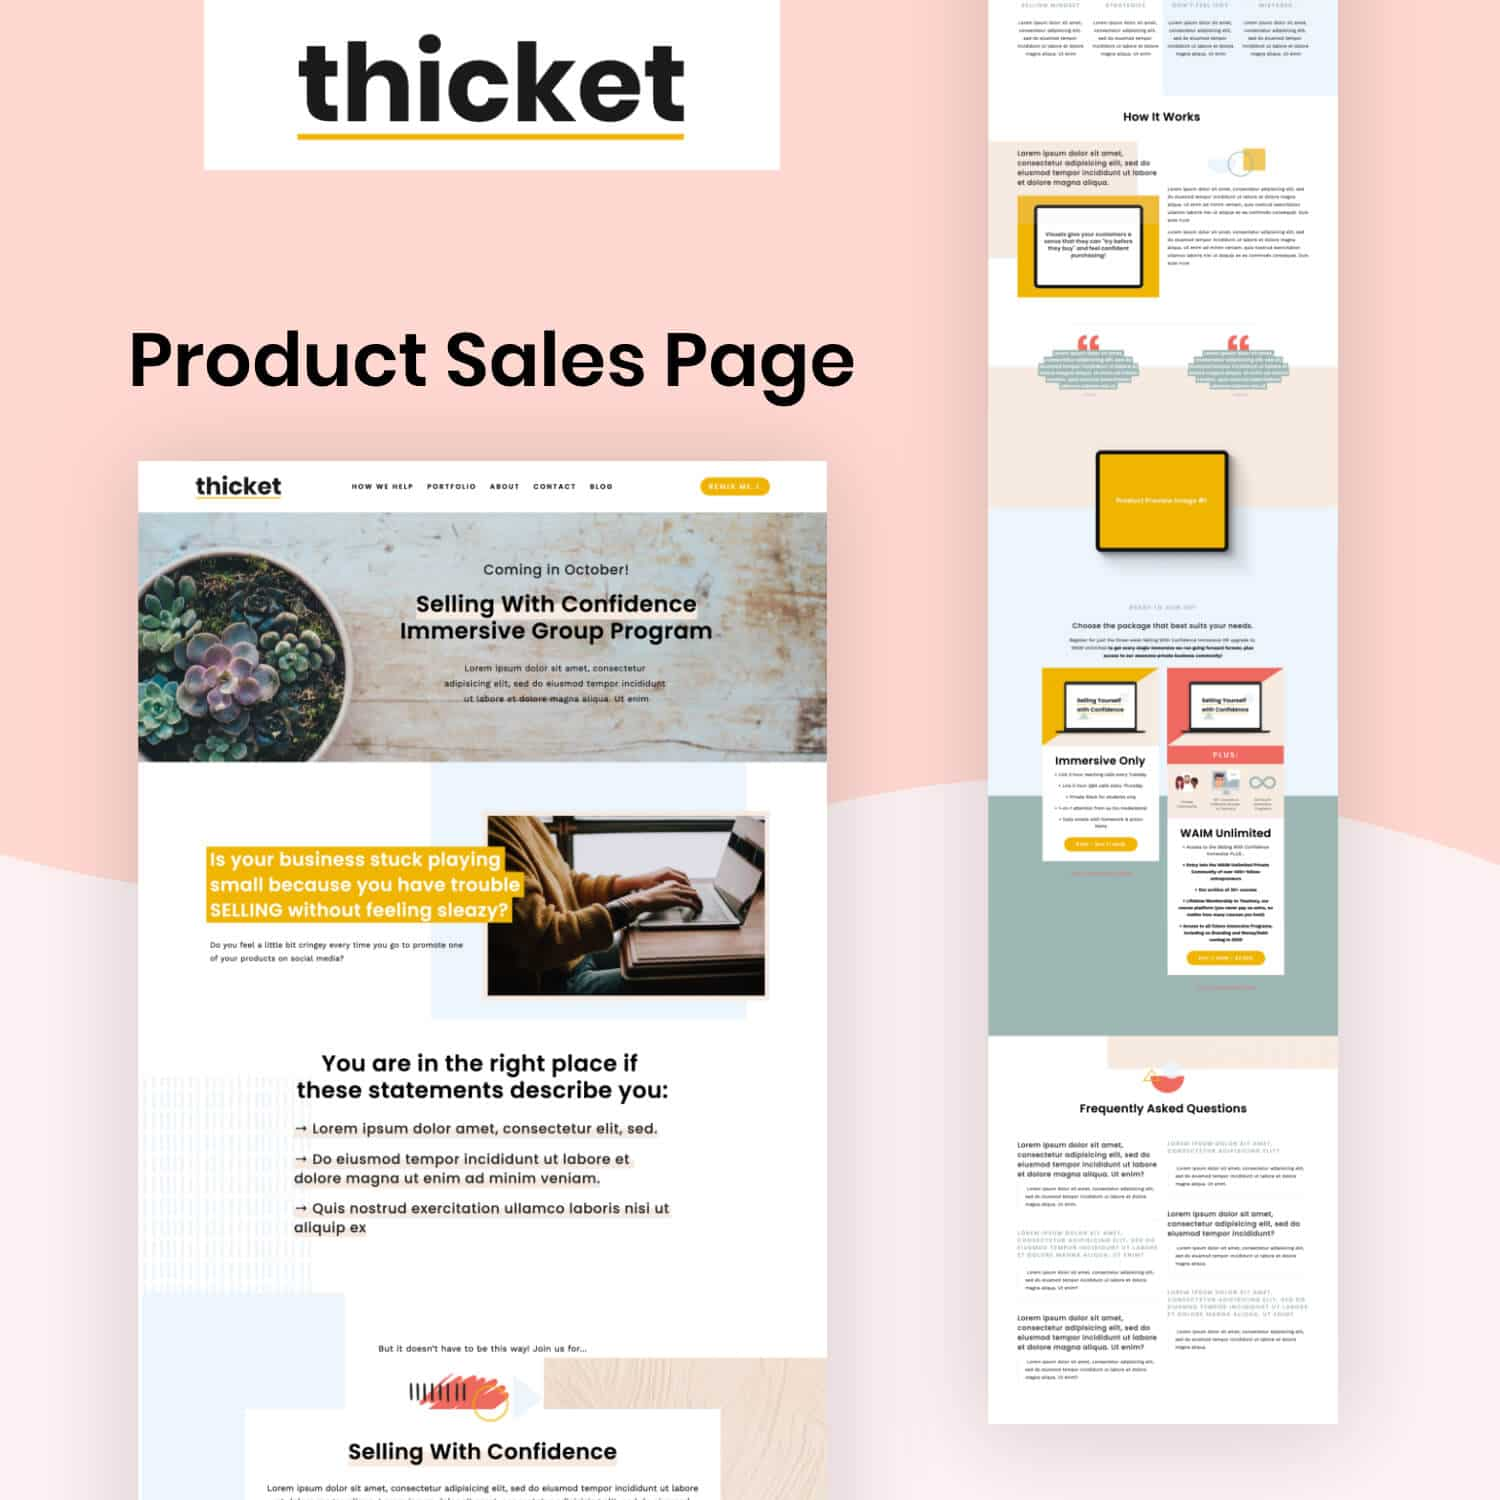 Thicket Product Sales Page